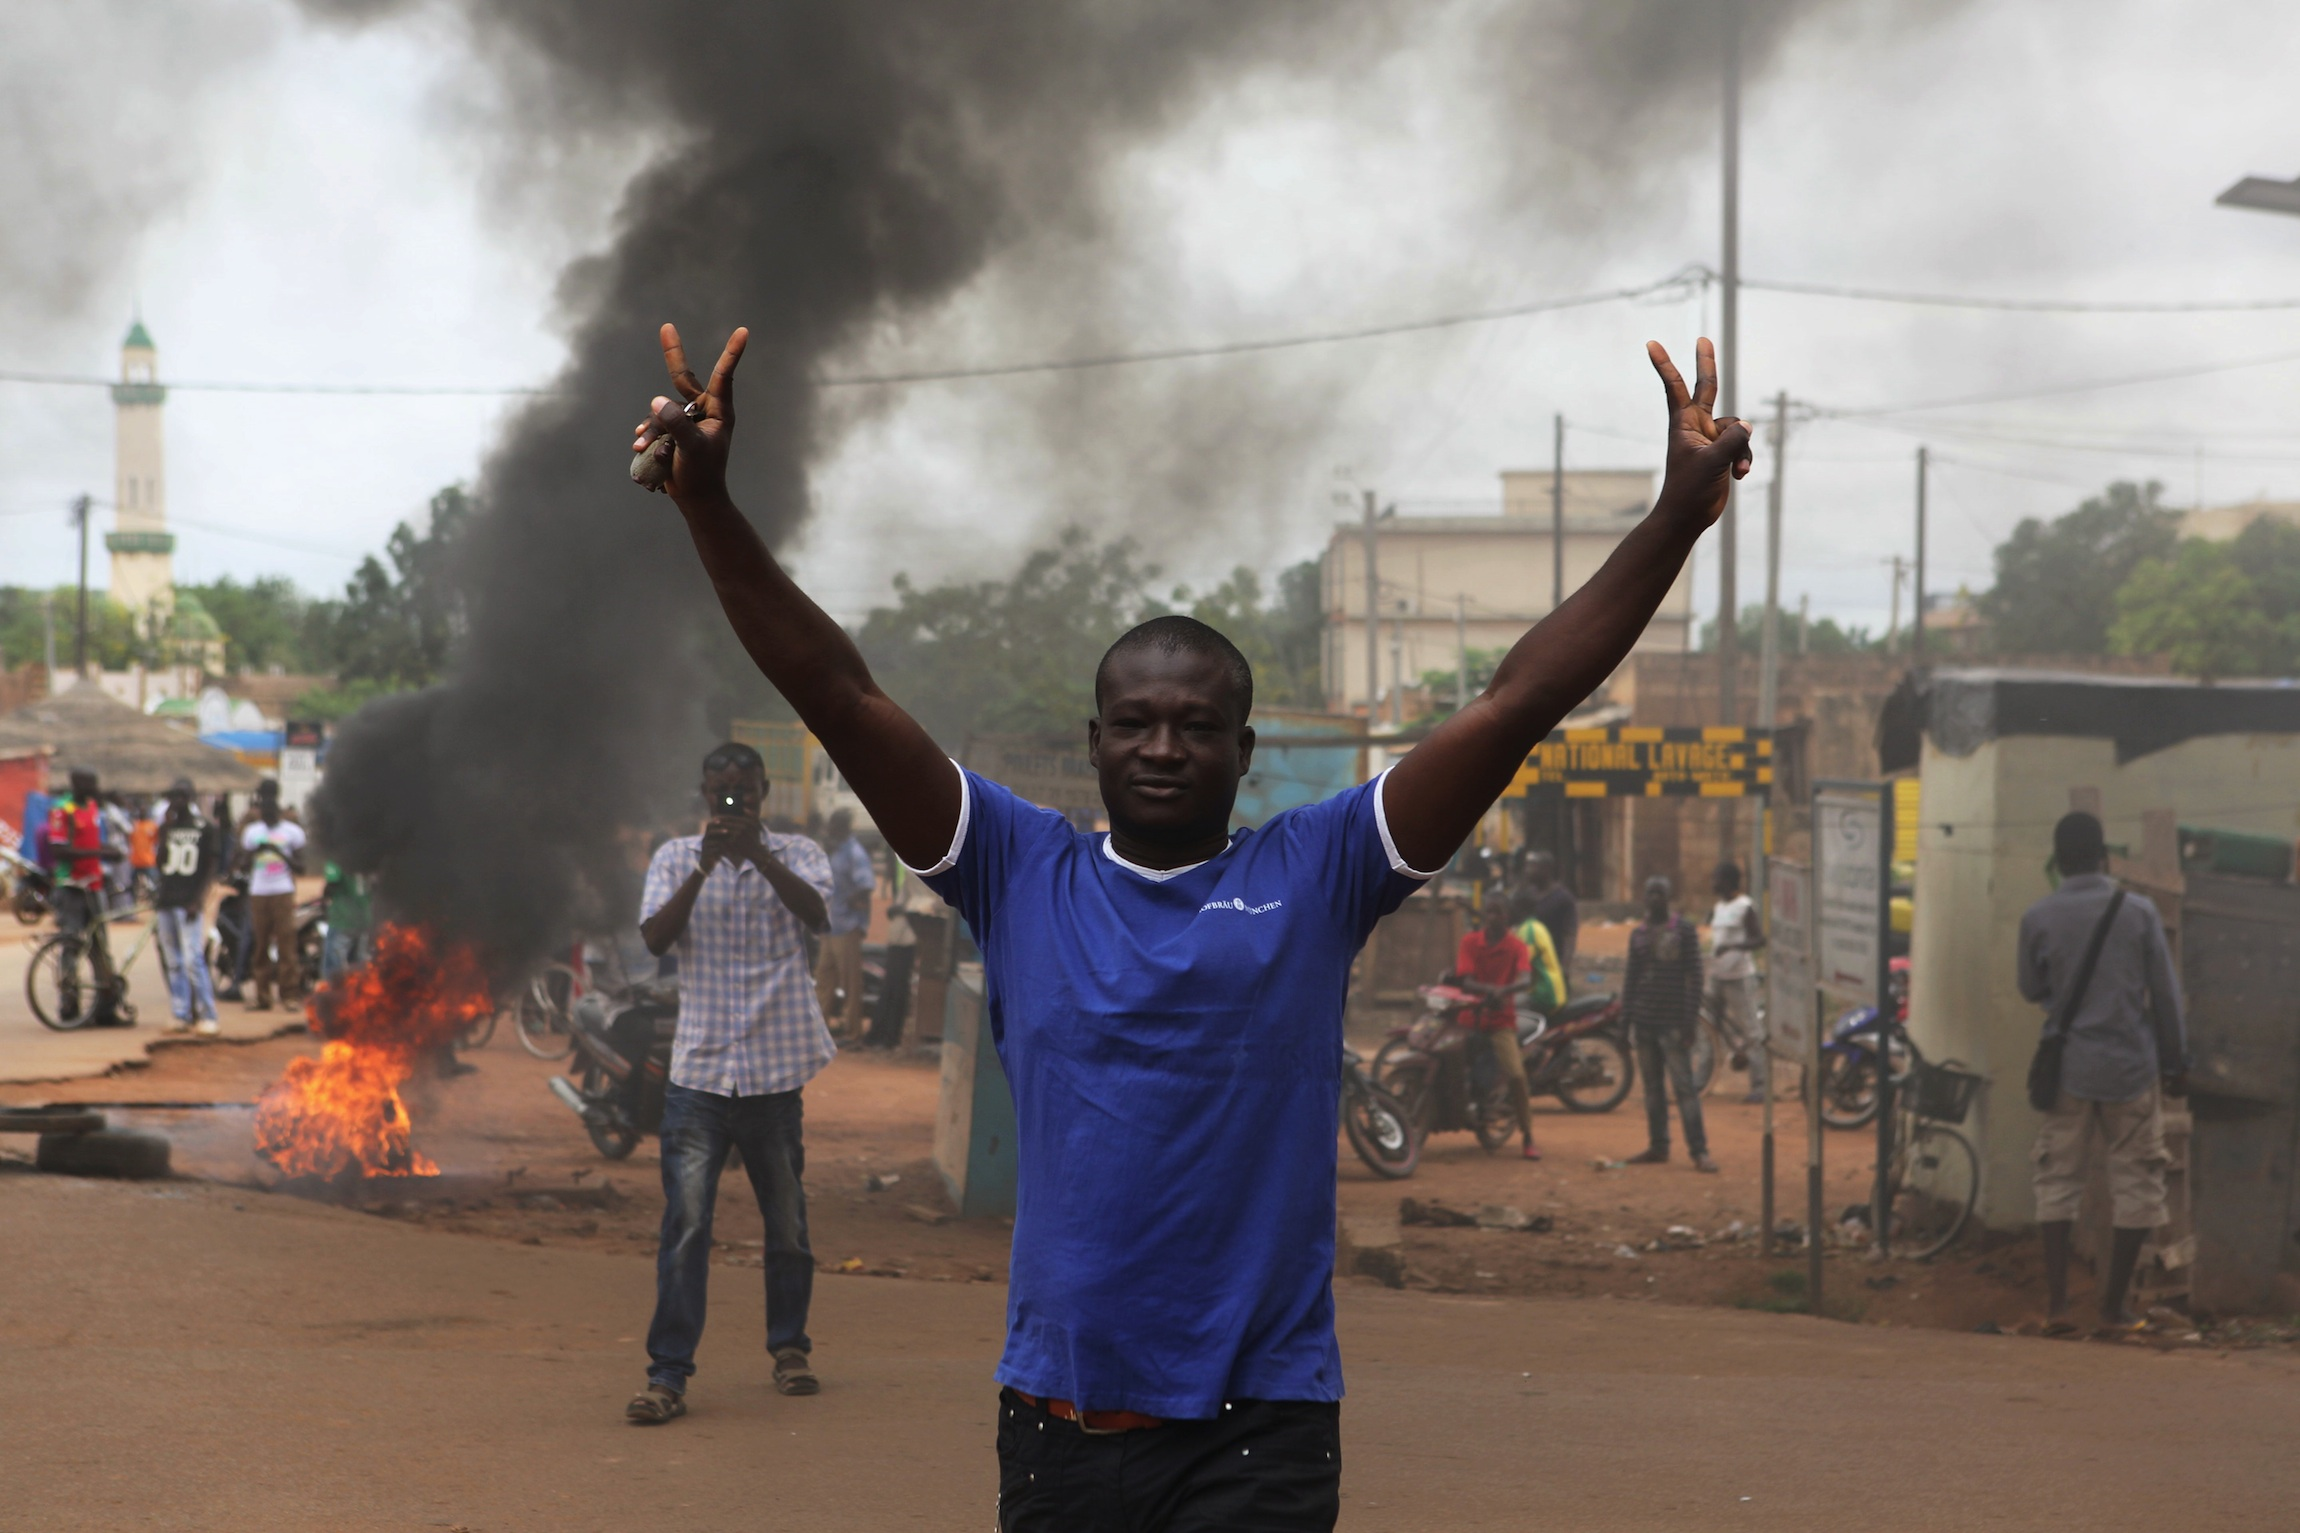 Protesters demonstrate against an ongoing military coup in Ouagadougou, Burkina Faso.